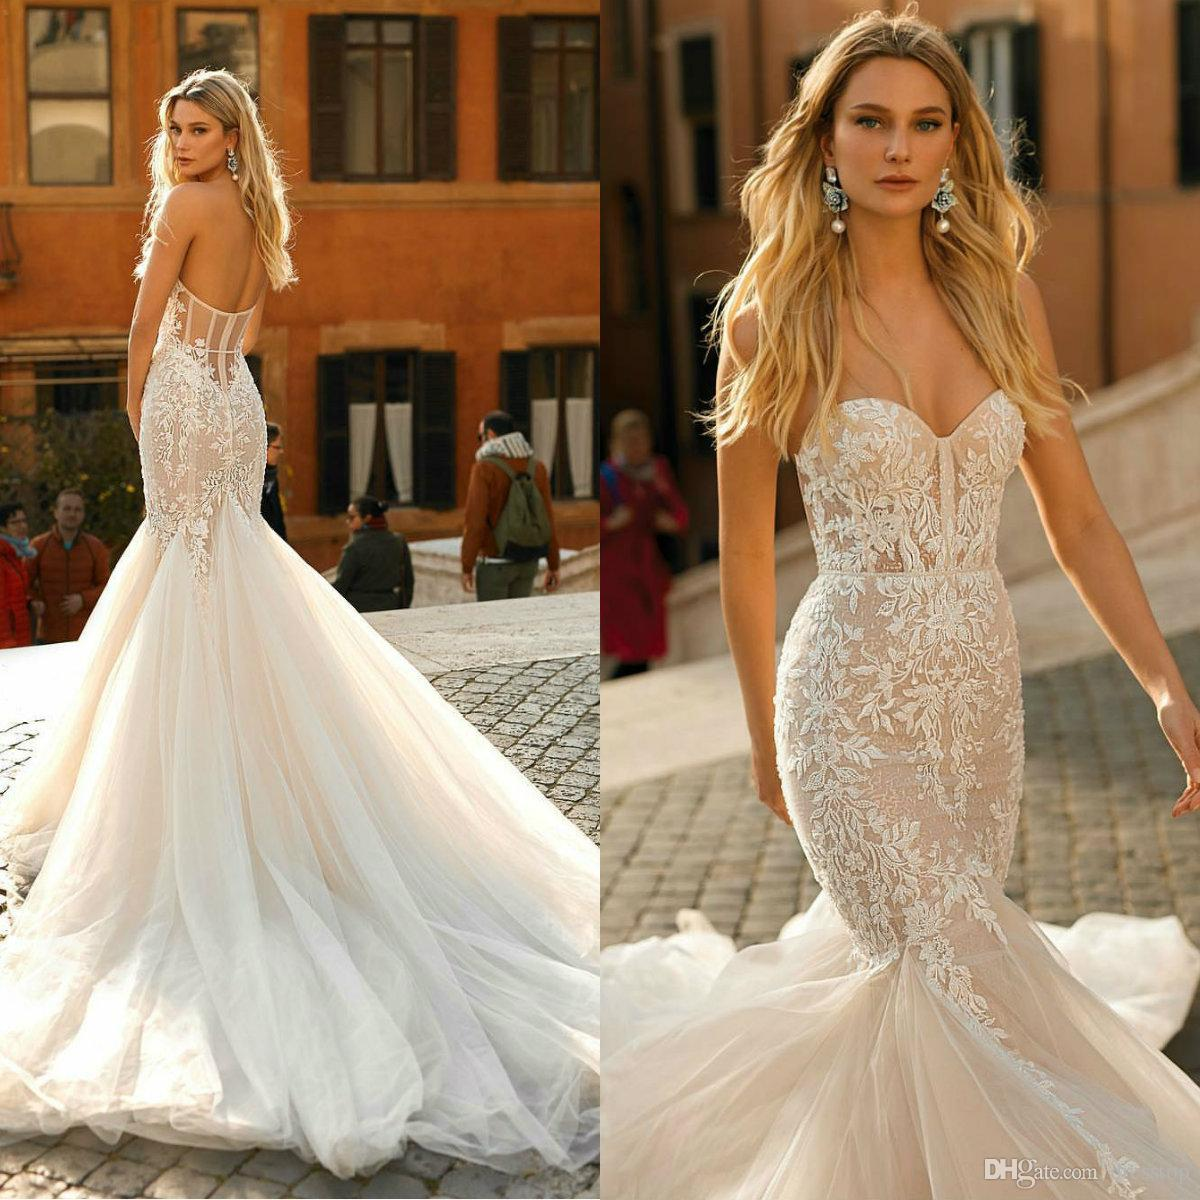 Discount Berta 2020 Mermaid Wedding Dresses Sweetheart Lace Sexy Backless Bridal Gowns Sweetheart Tulle Sweep Train Beach Wedding Dress A Line Wedding A Line Wedding Dresses Pinterest From Dresstop 144 94 Dhgate Com